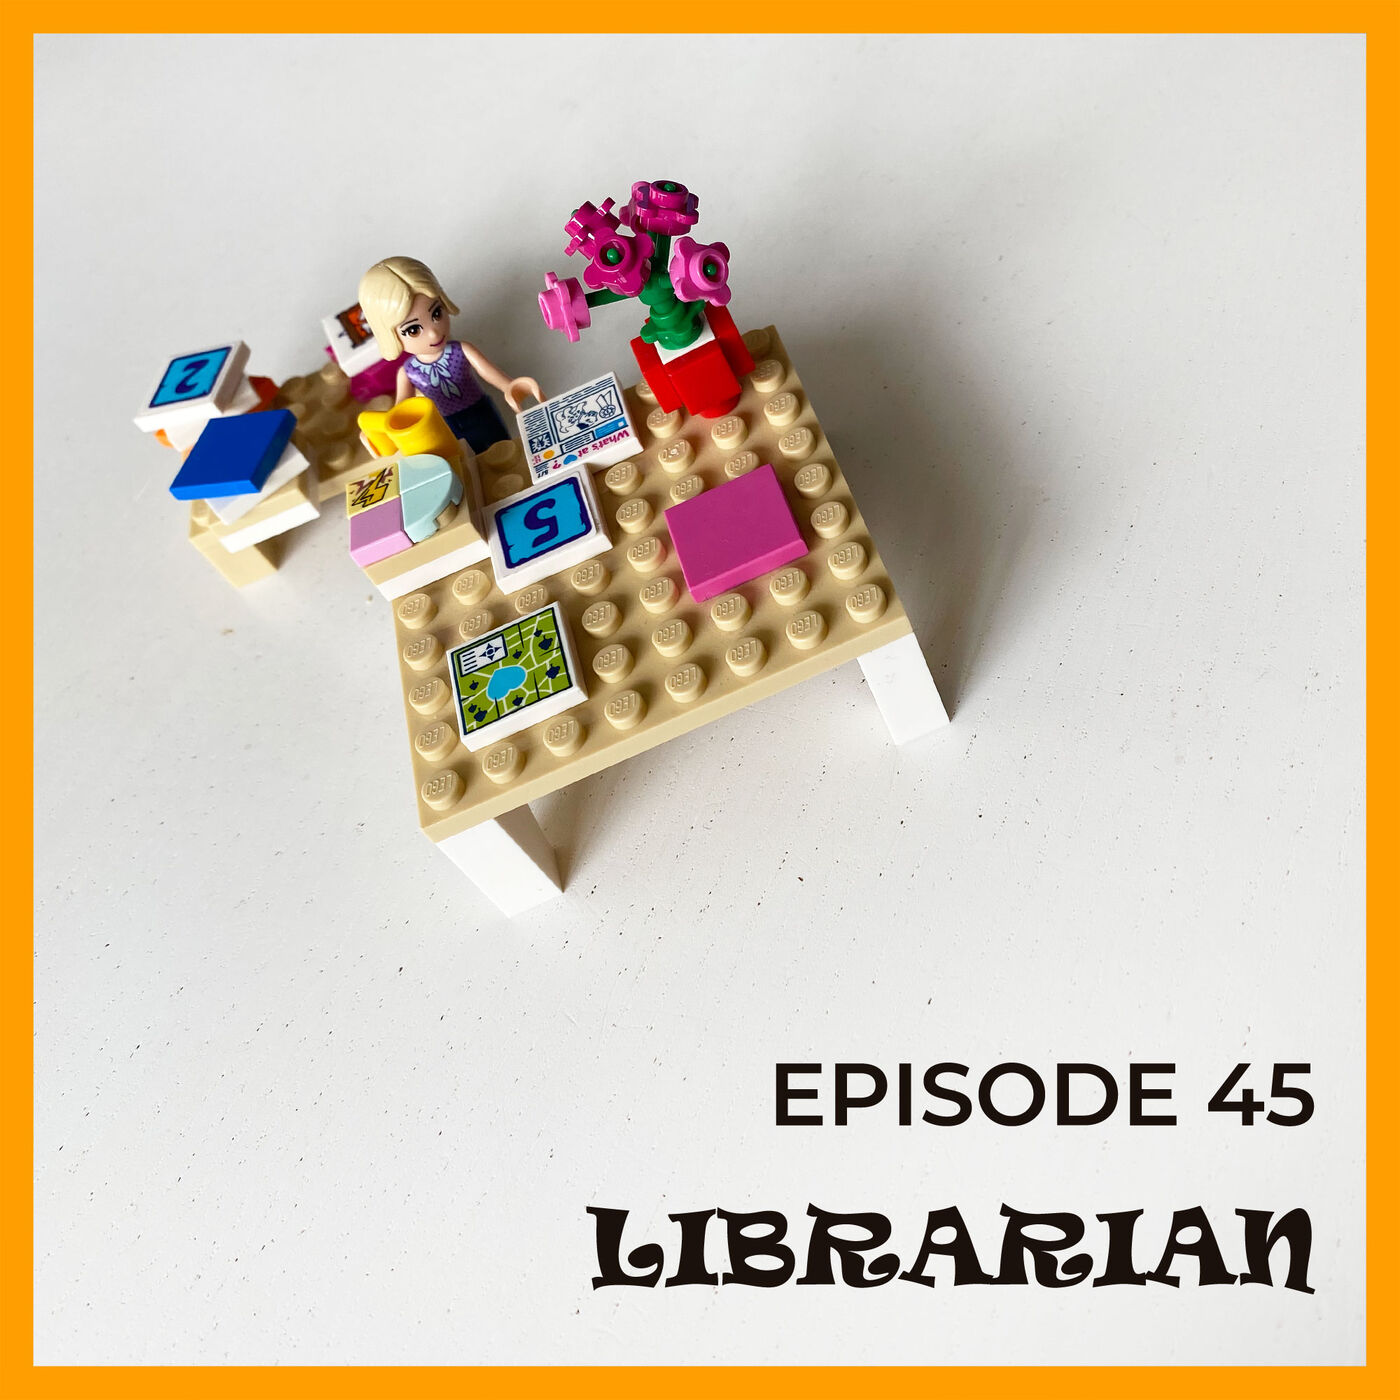 The Subject Librarian